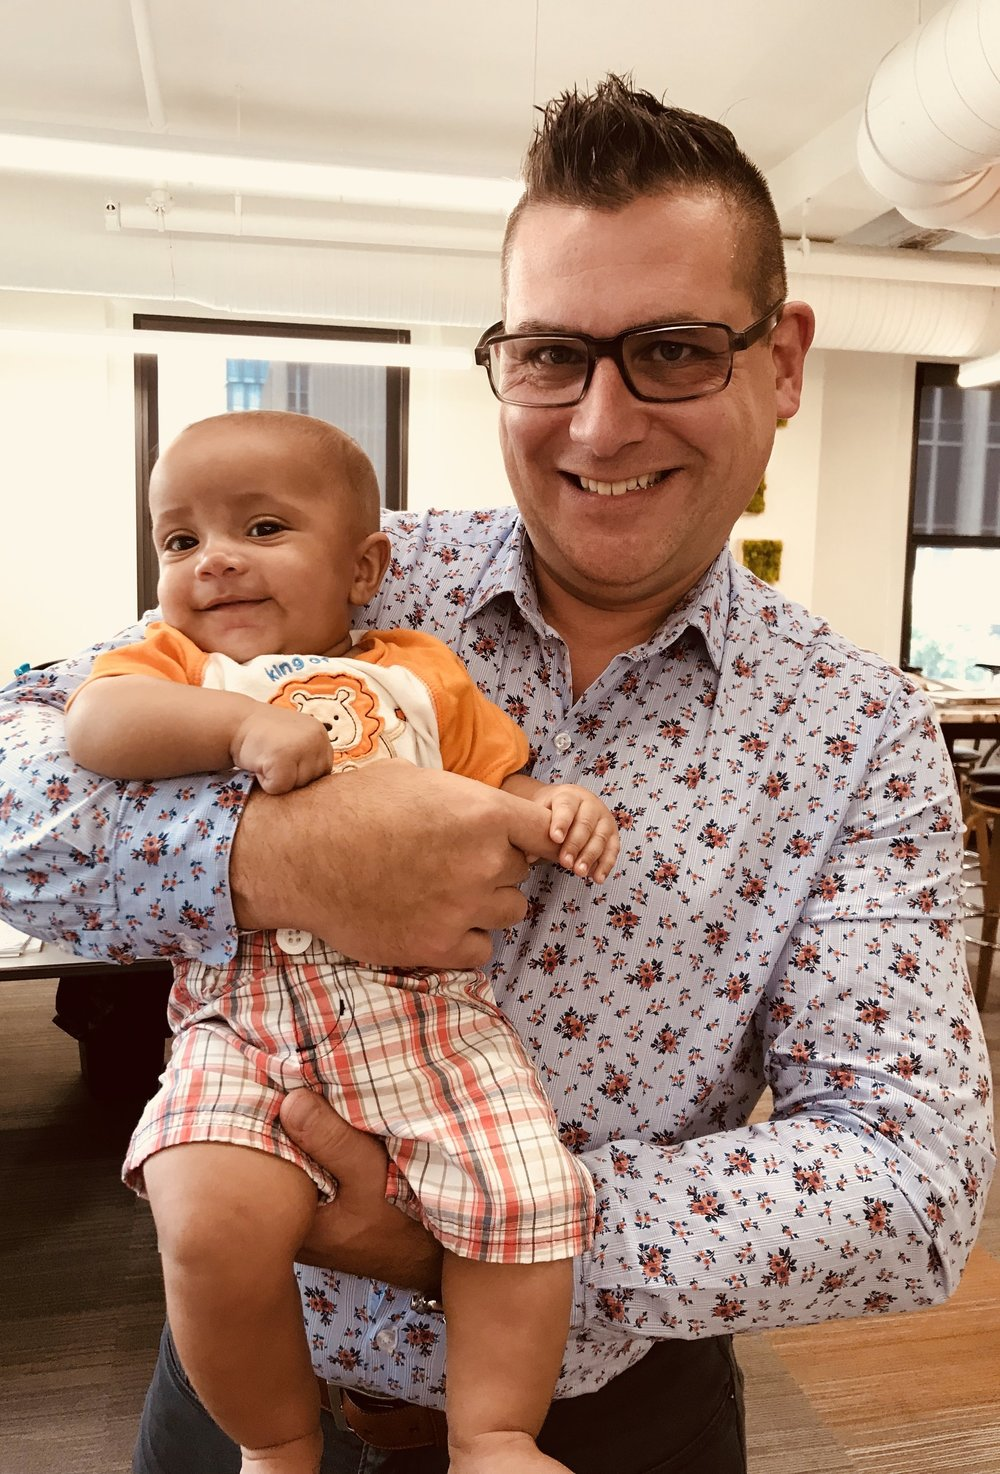 A surprise visit by the most adorable baby in the office…